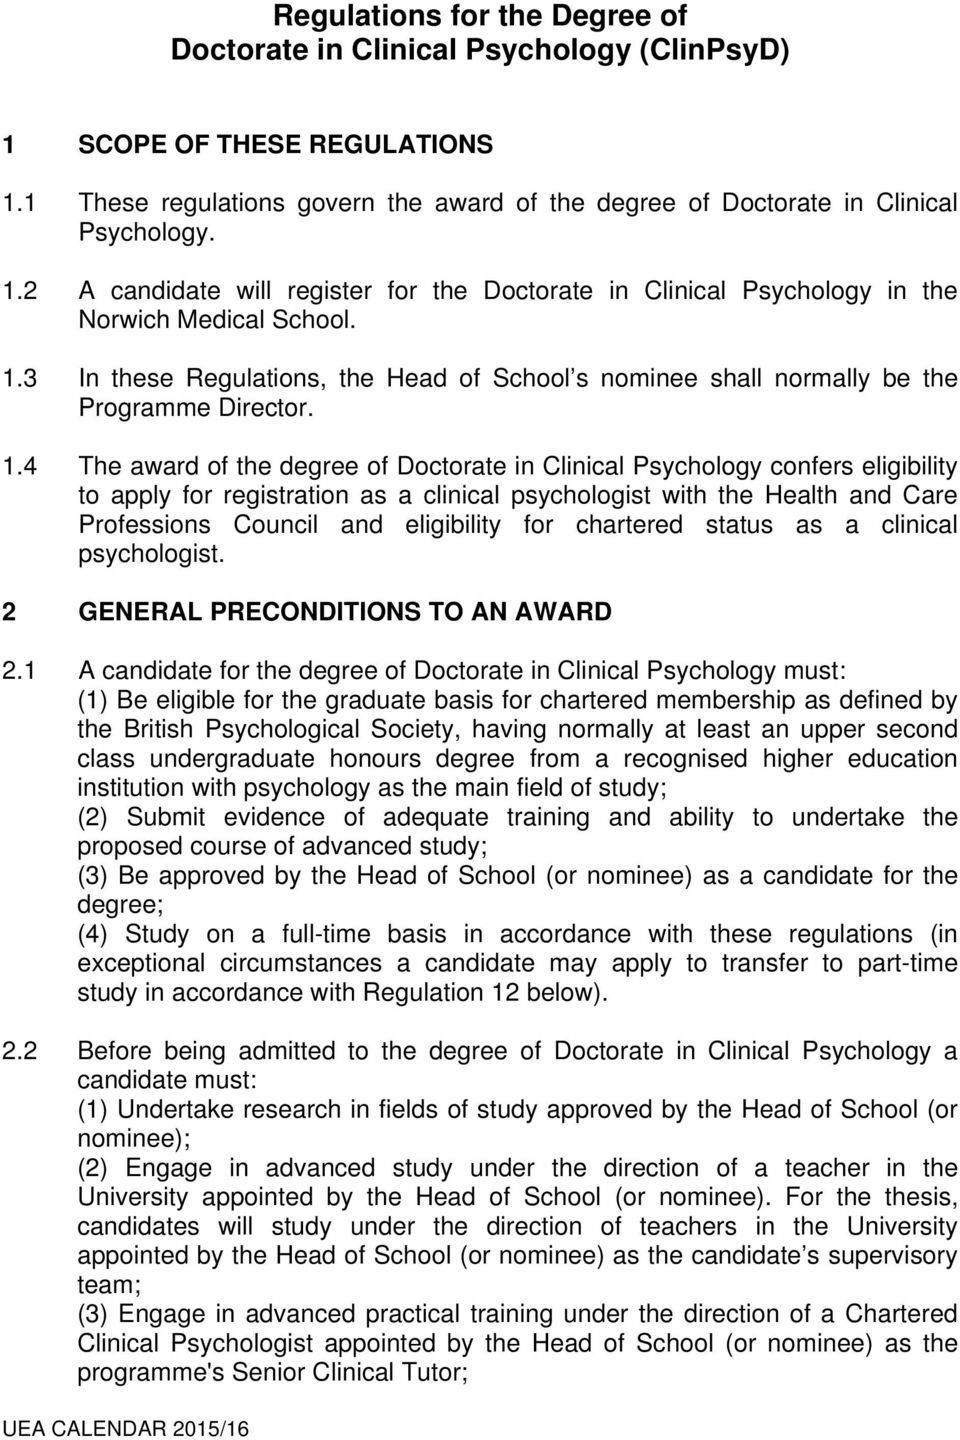 4 The award of the degree of Doctorate in Clinical Psychology confers eligibility to apply for registration as a clinical psychologist with the Health and Care Professions Council and eligibility for